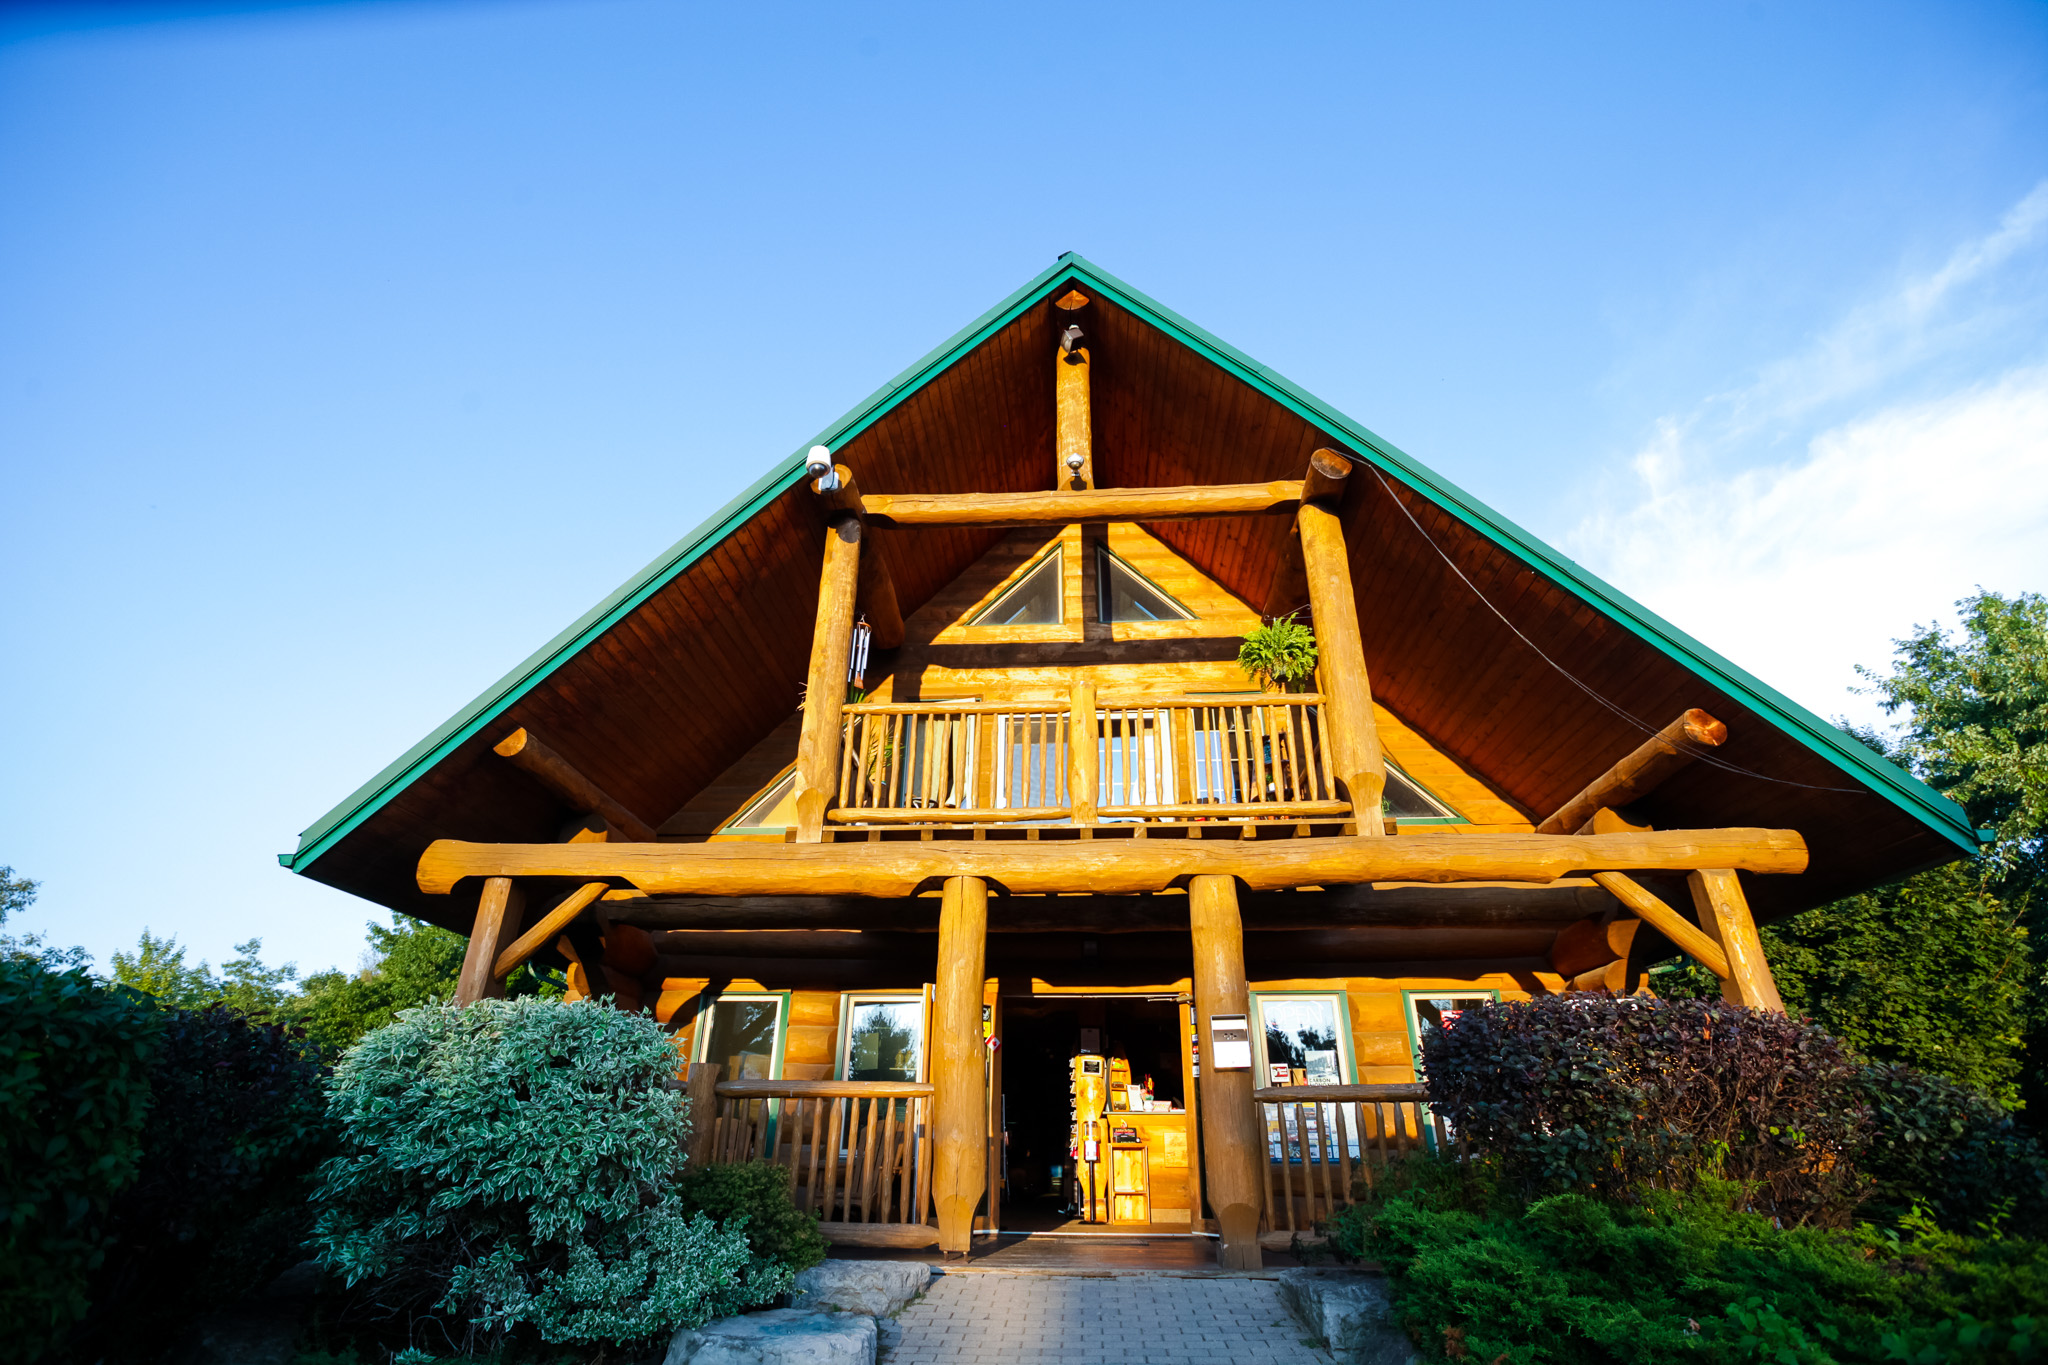 Wooden cabin-style clubhouse of the Bissell's Hideaway Resort